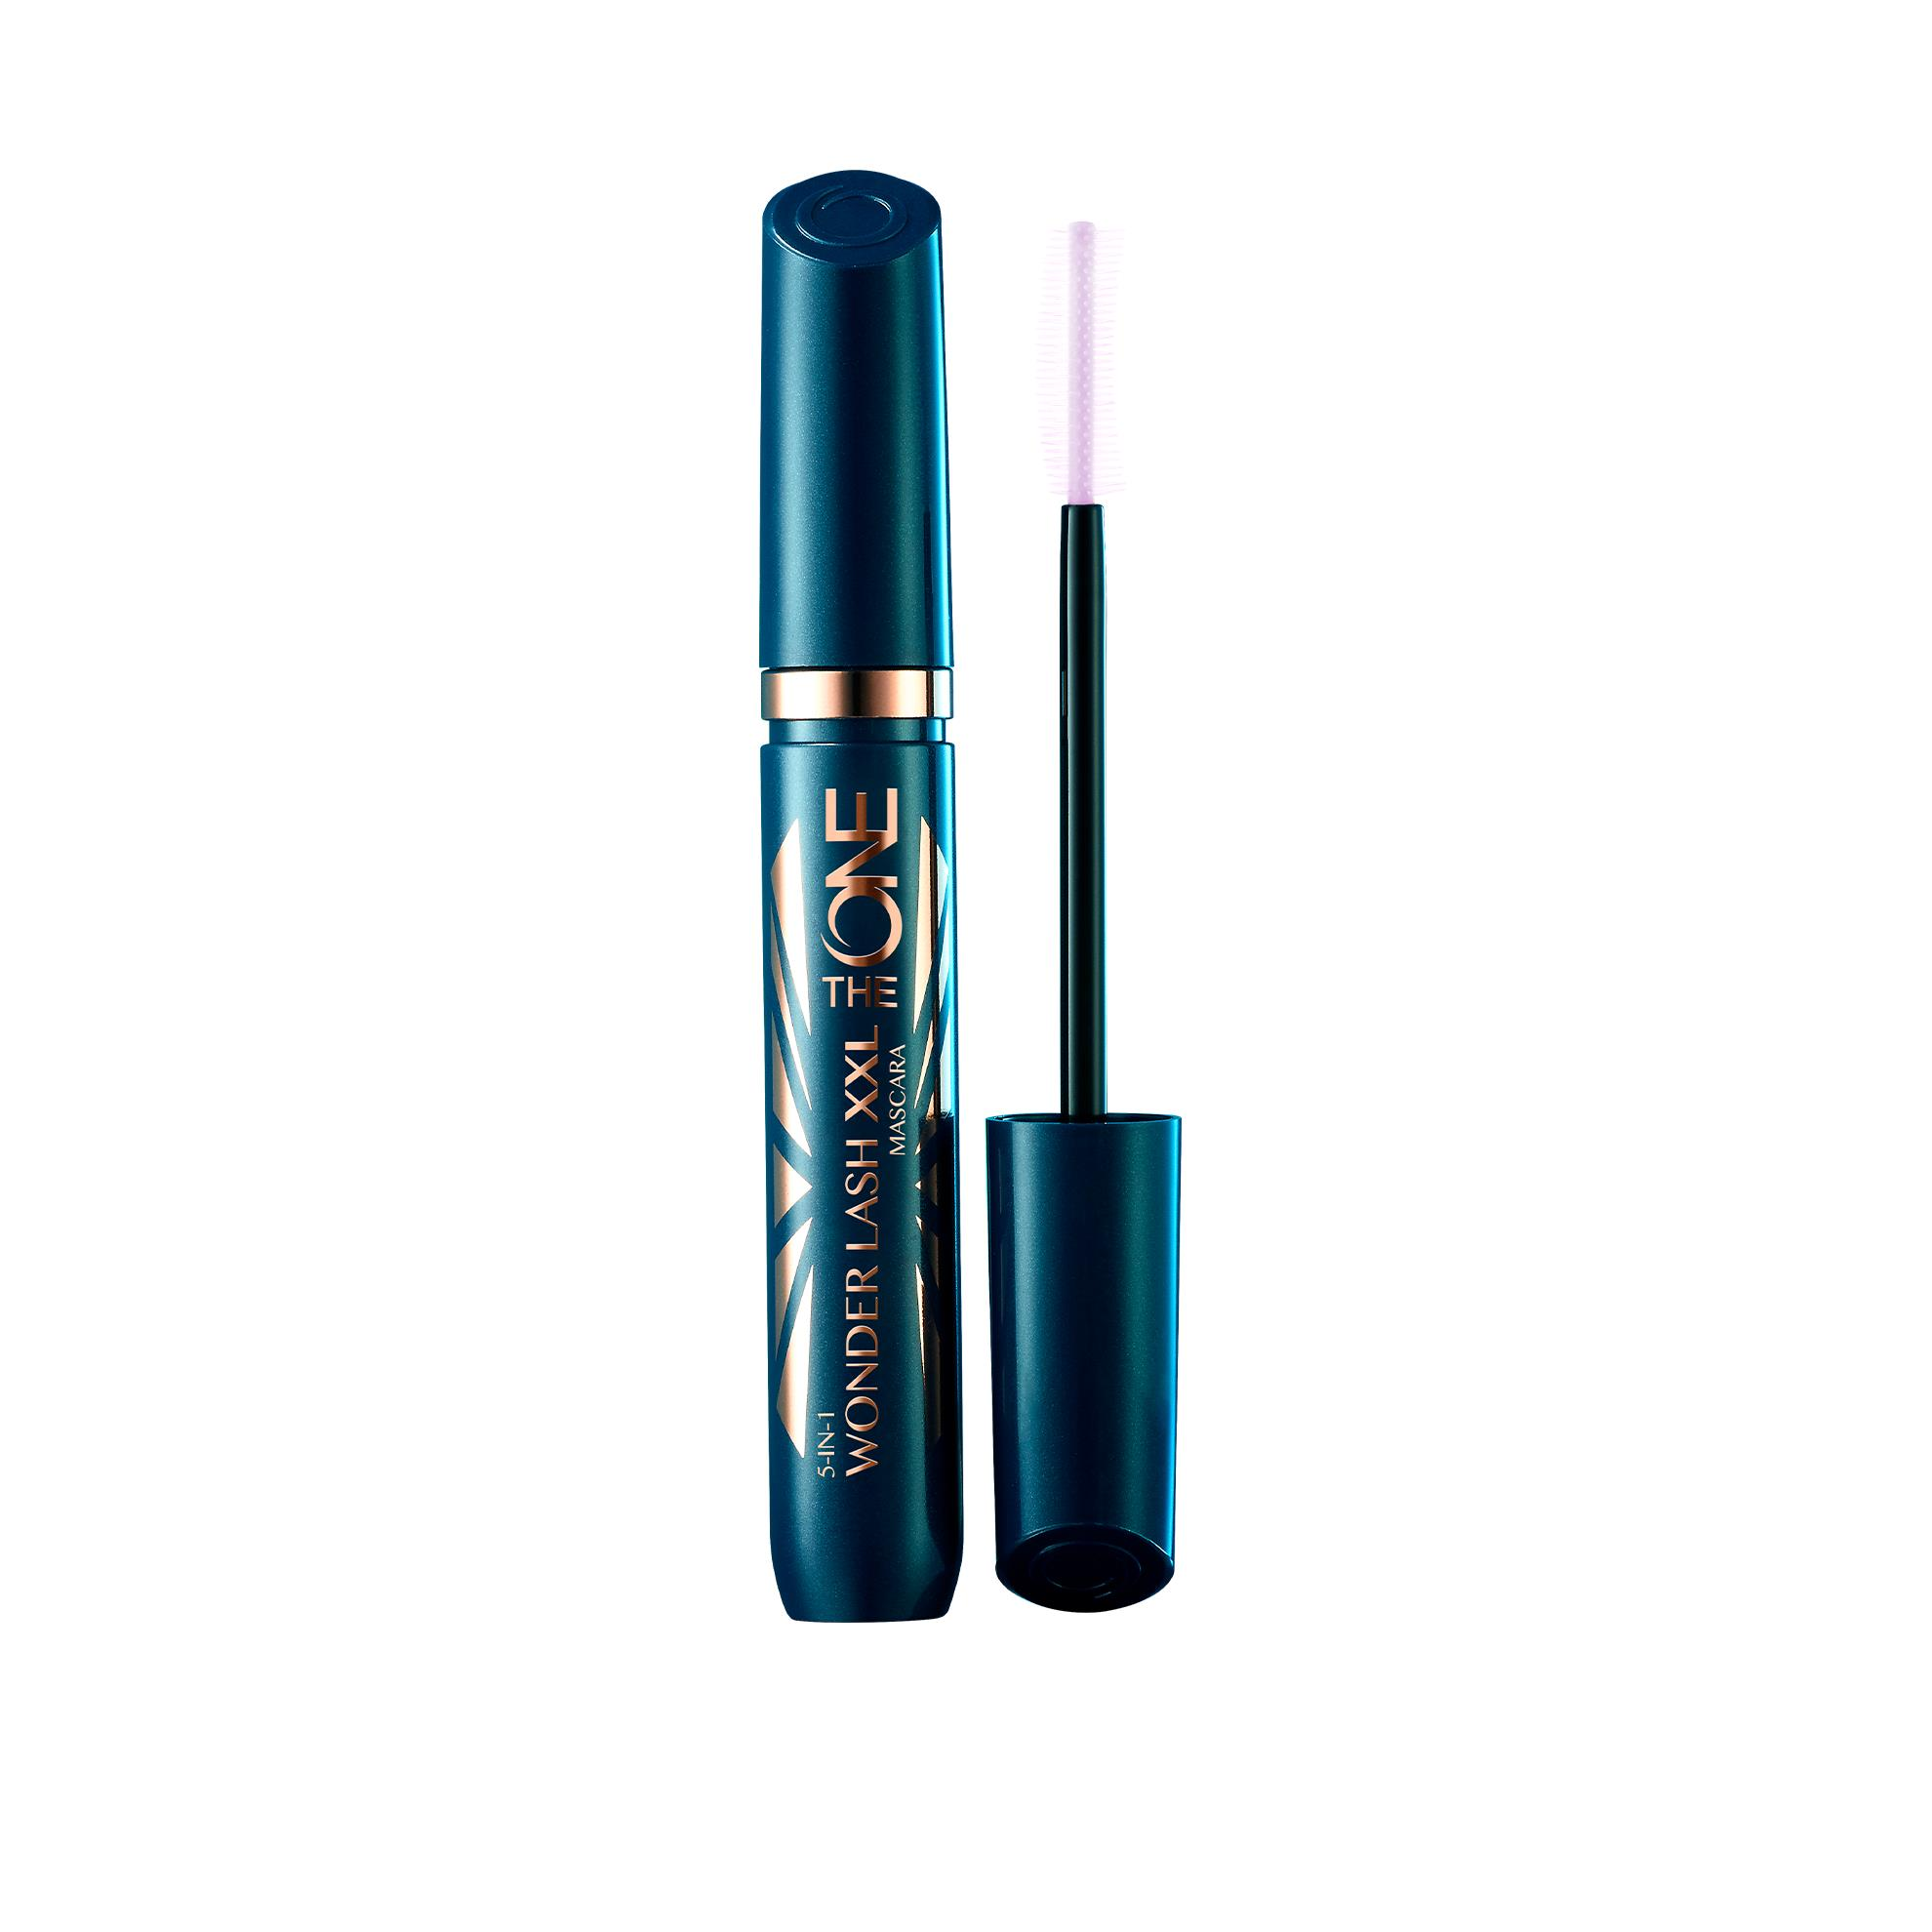 Oriflame The ONE Wonderlash Mascara